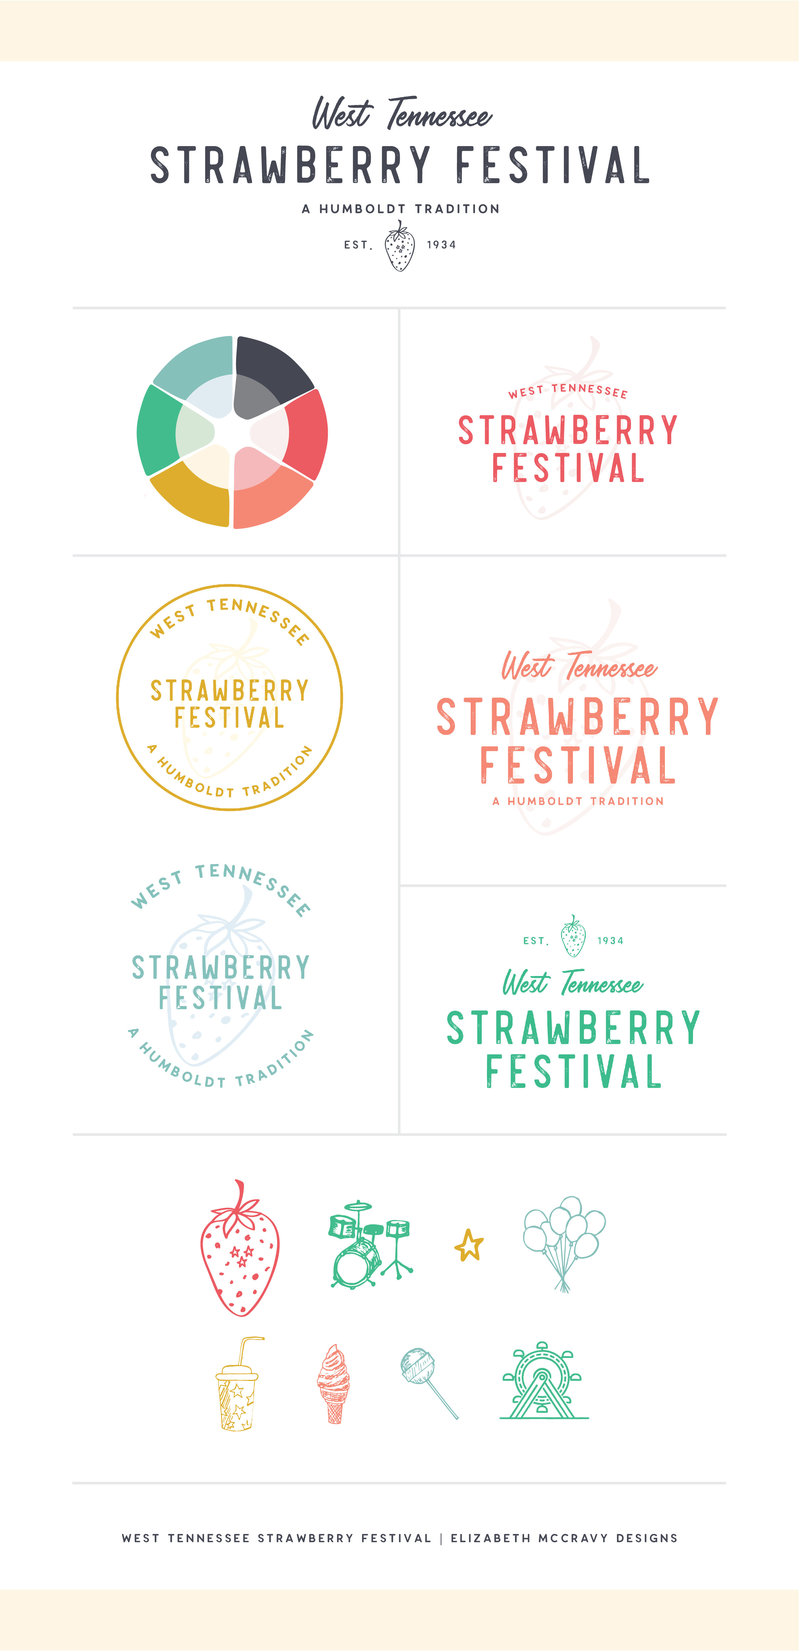 StrawberryFestival-Brand-Color-Guide-01